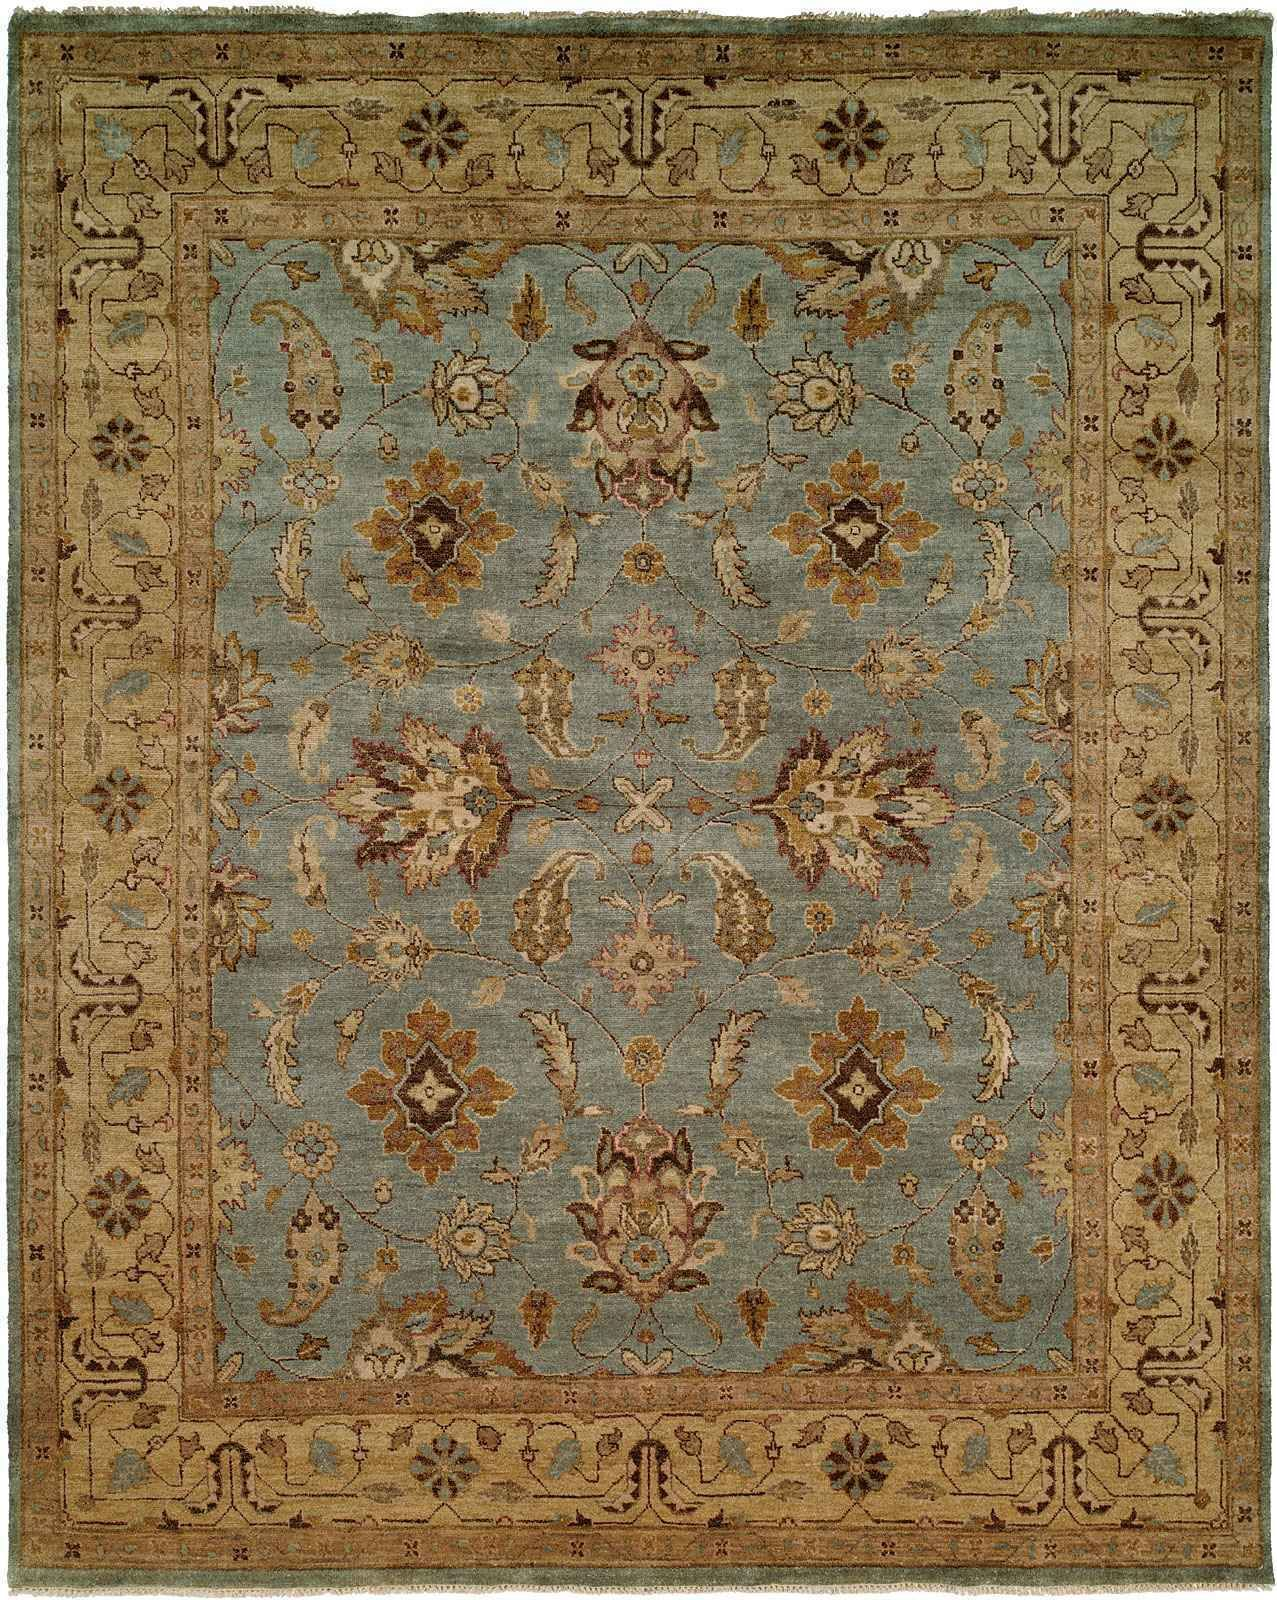 This Classic Rug Would Be A Great Option For All The